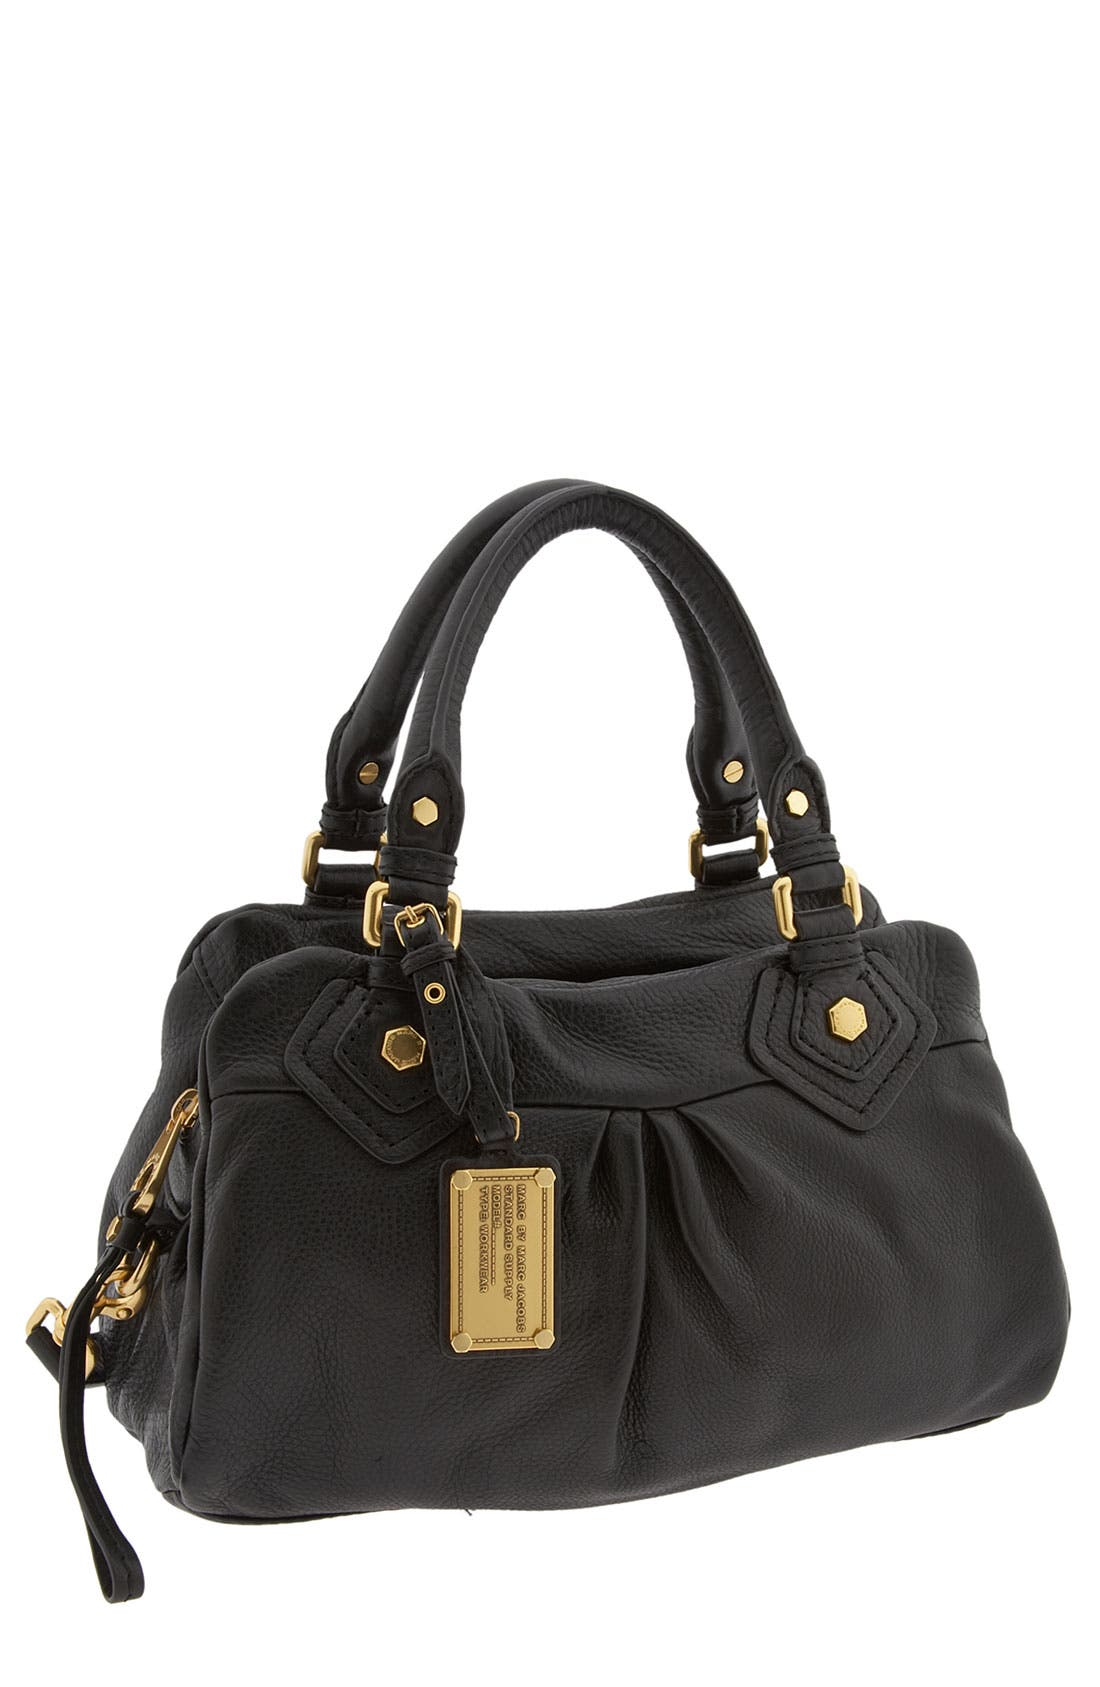 MARC BY MARC JACOBS 'Classic Q - Baby Groovee' Satchel,                             Main thumbnail 1, color,                             001